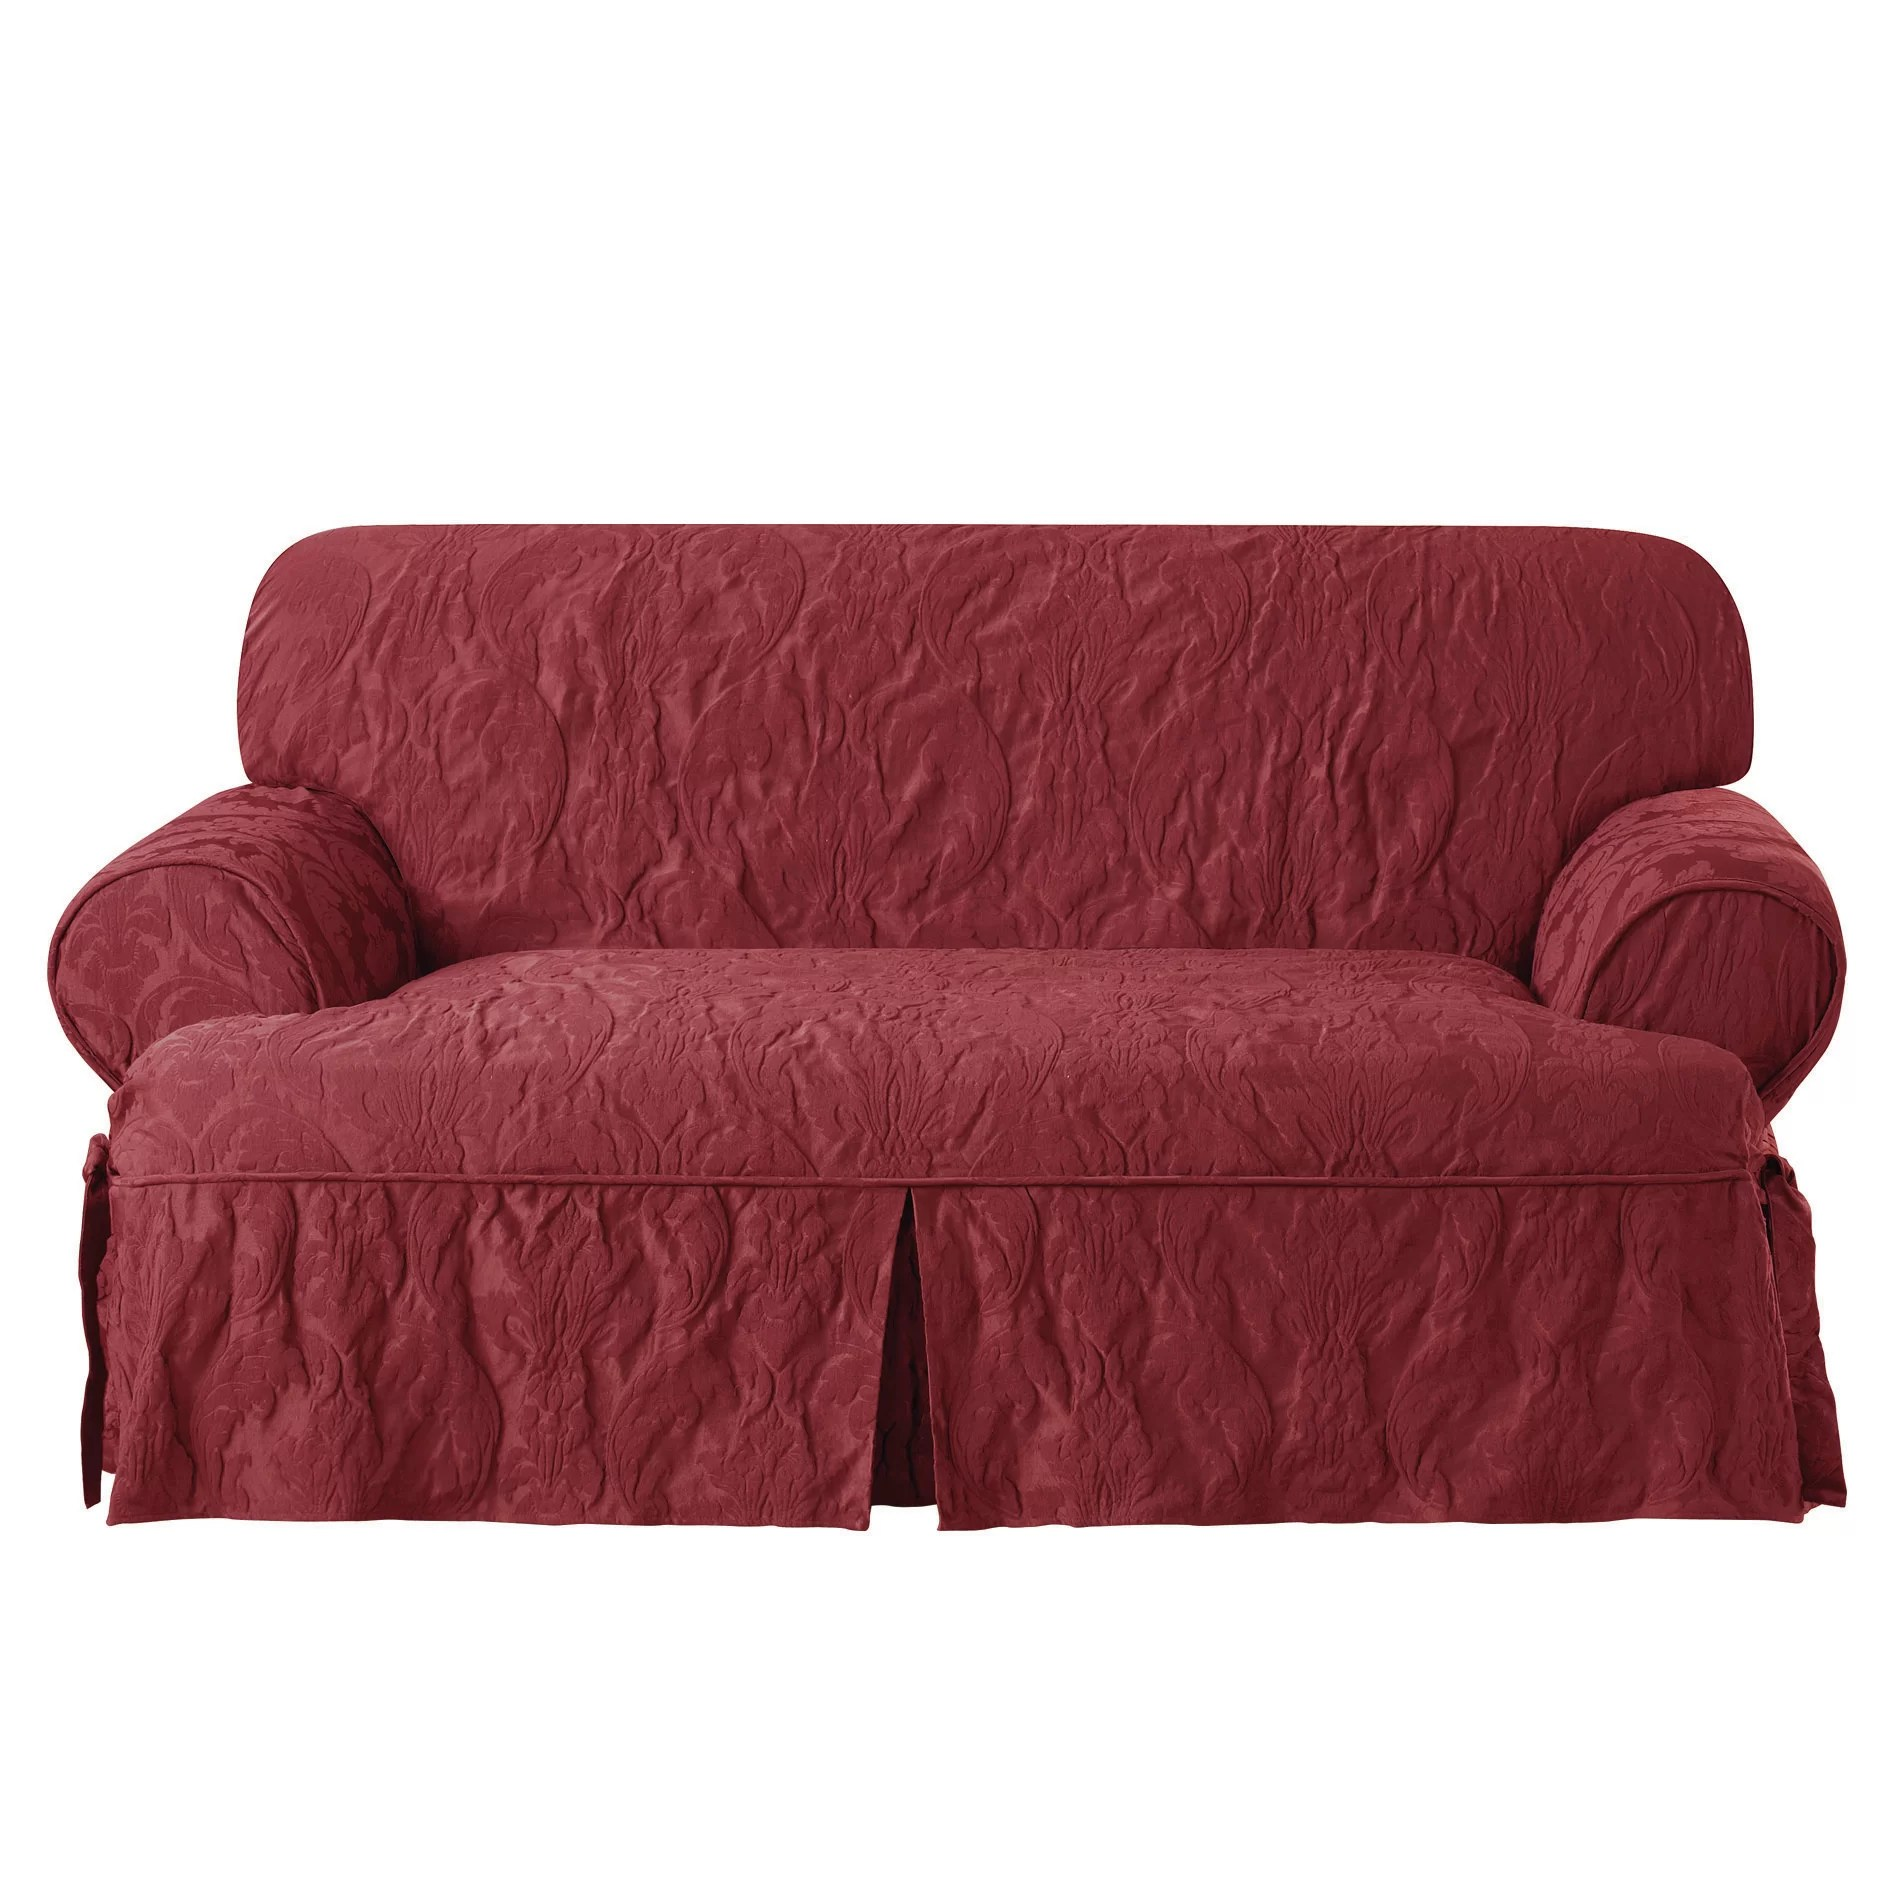 sure fit durham one piece sofa slipcover double bed beds matelasse damask loveseat t cushion